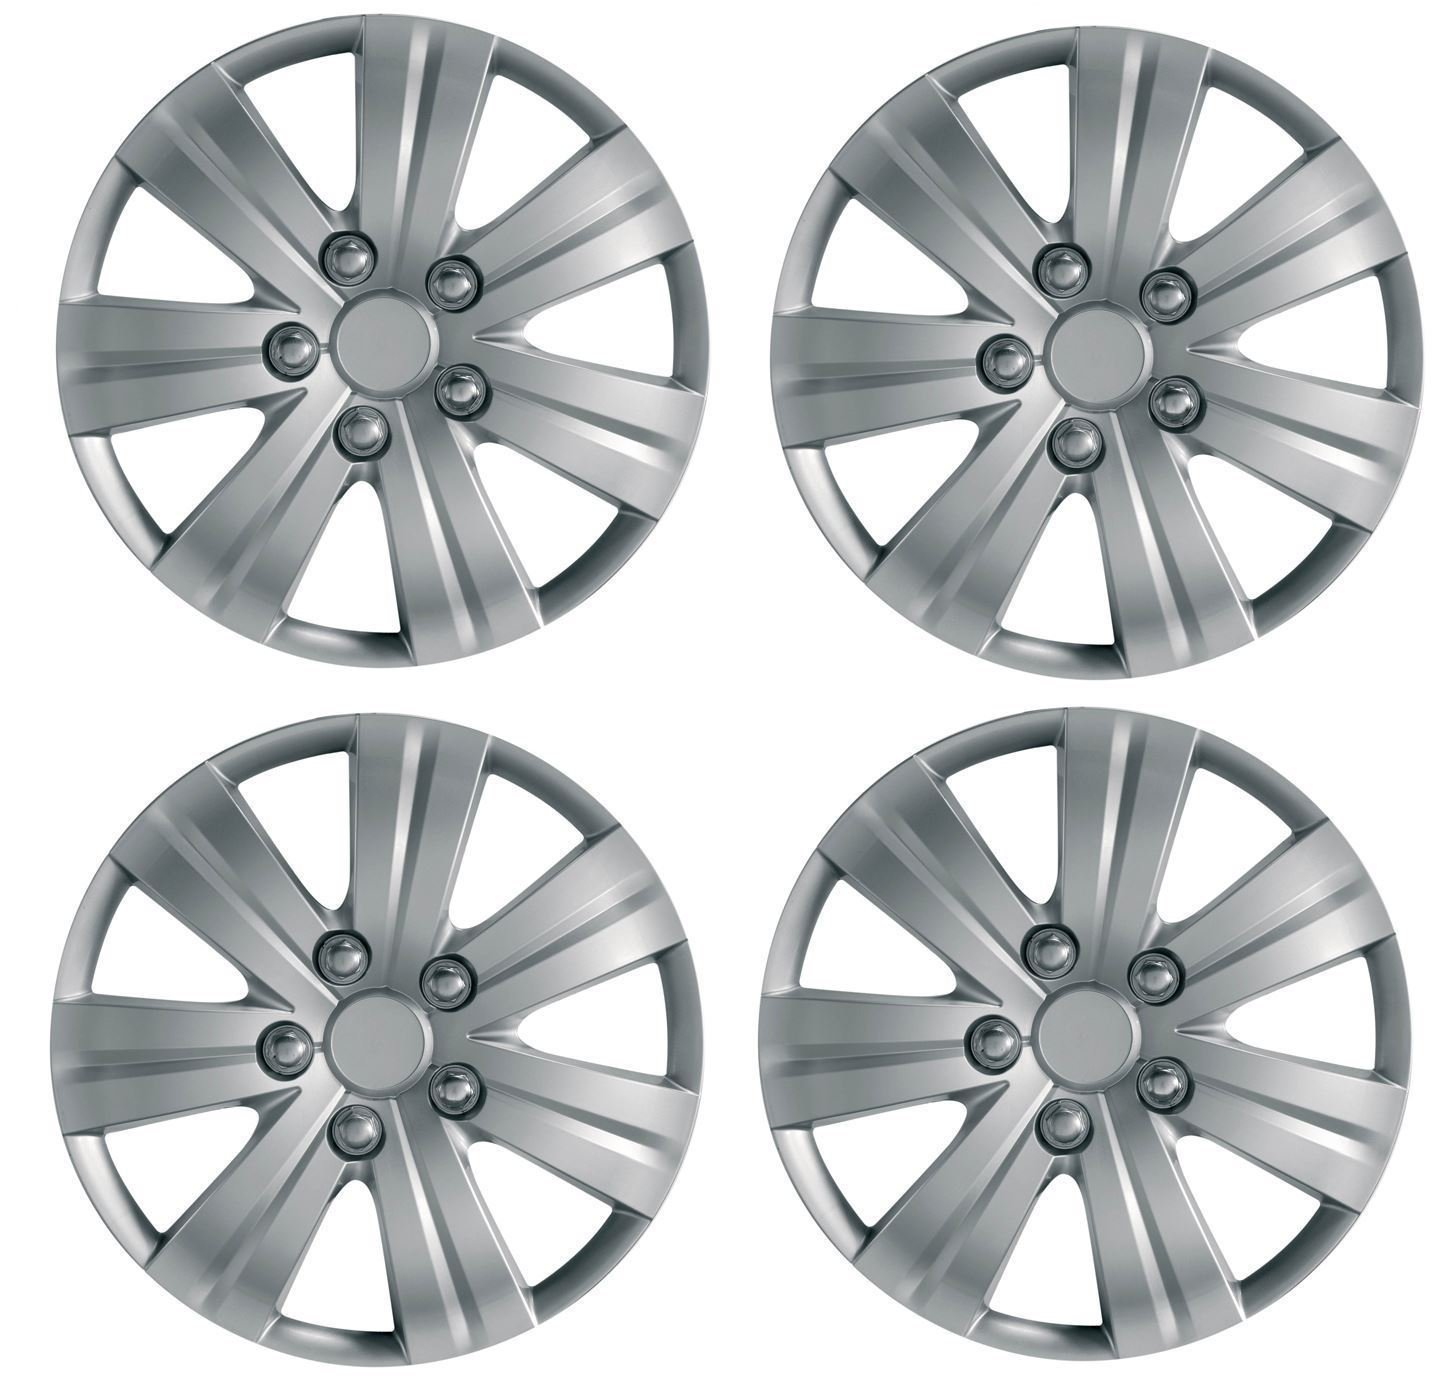 UKB4C 4 x Wheel Trims Hub Caps 16' Covers fits Vauxhall Astra H Meriva B Zafira